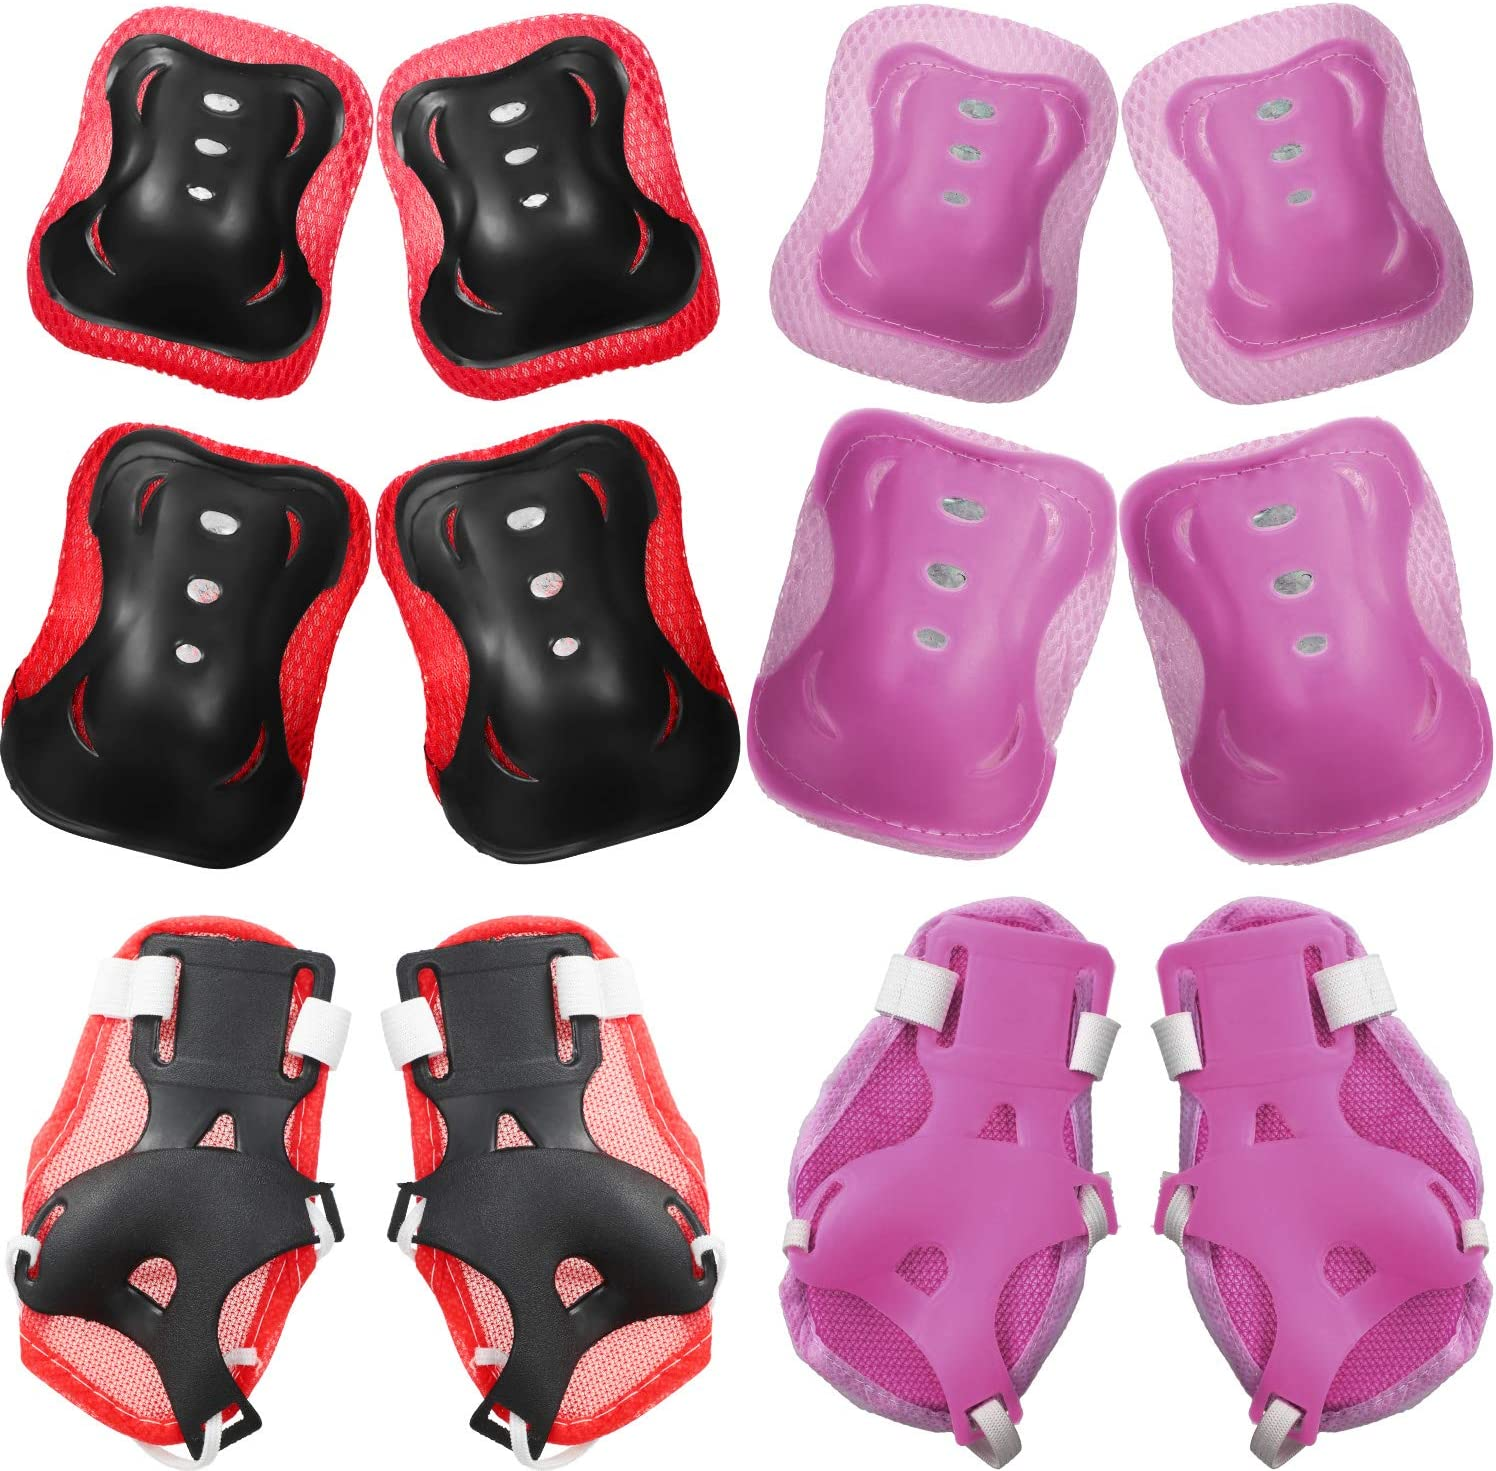 2 Sets Kids Protective Gear Set Knee Elbow Pads Wrist Guards for Youth Protection Guard Set for Skates Cycling Skateboard Inline Skating Scooter Riding Sports